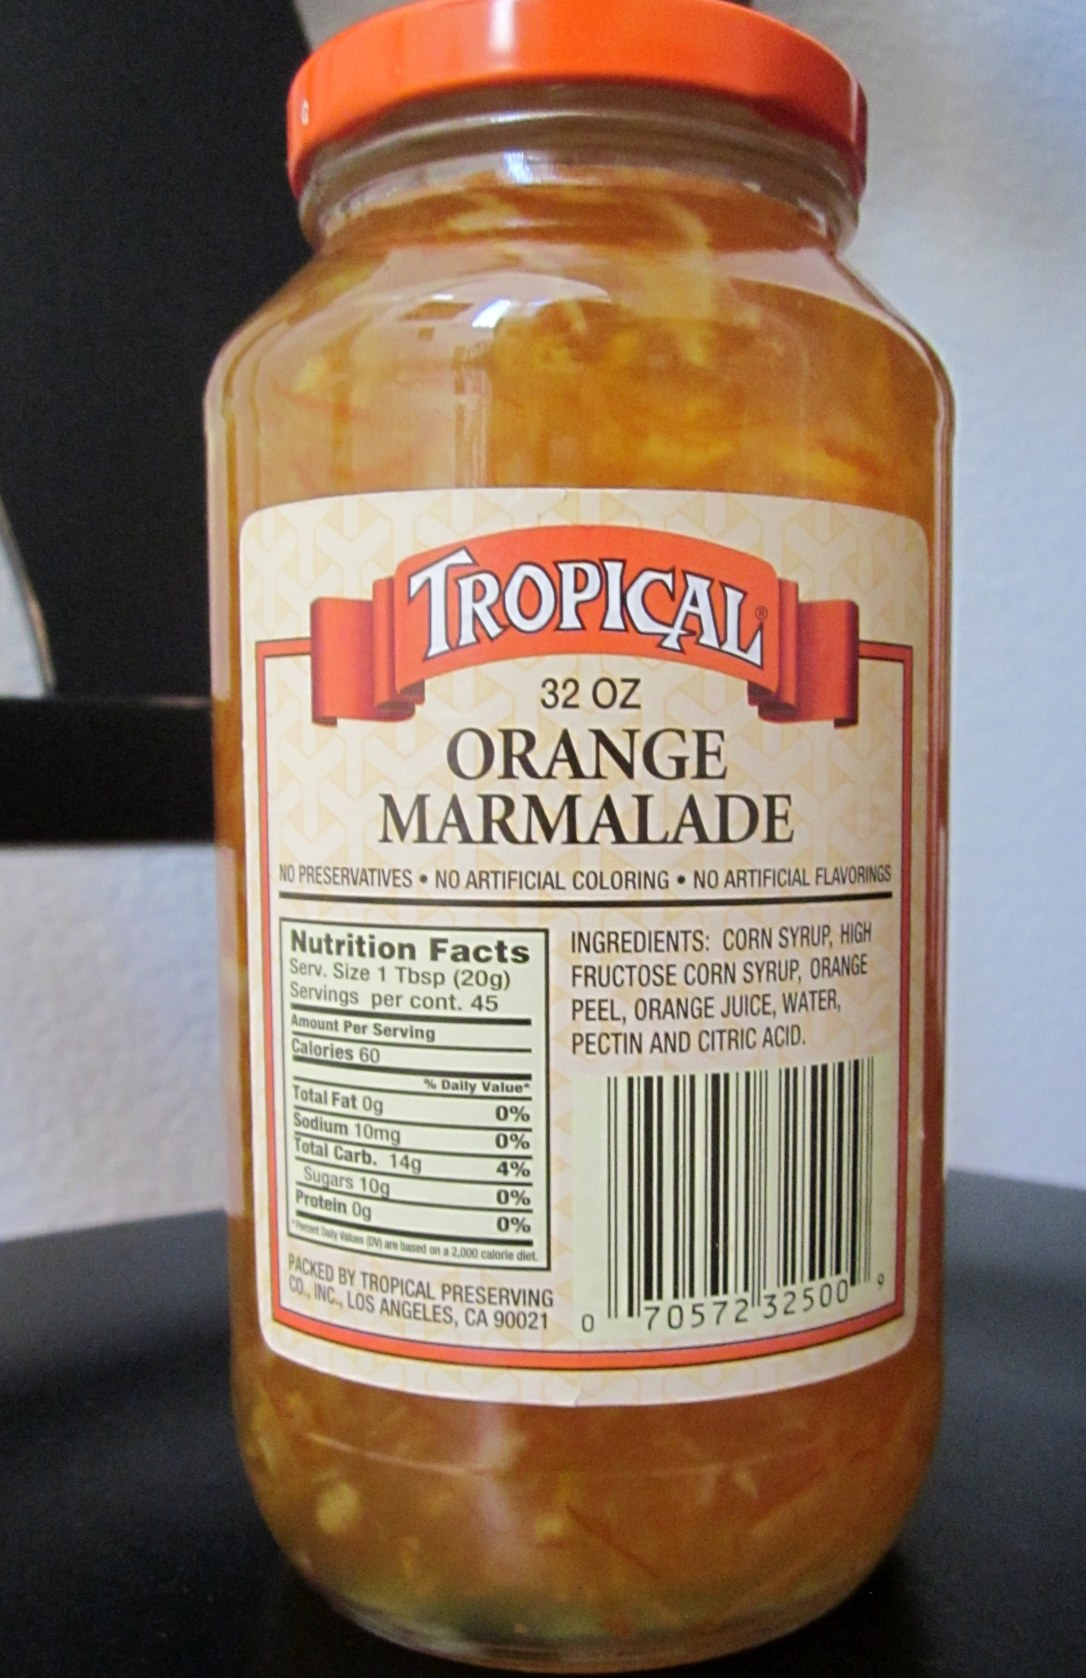 Corn Syrup and High Fructose Corn Syrup are the First Two Ingredients in Tropical Marmalade Made in Los Angeles